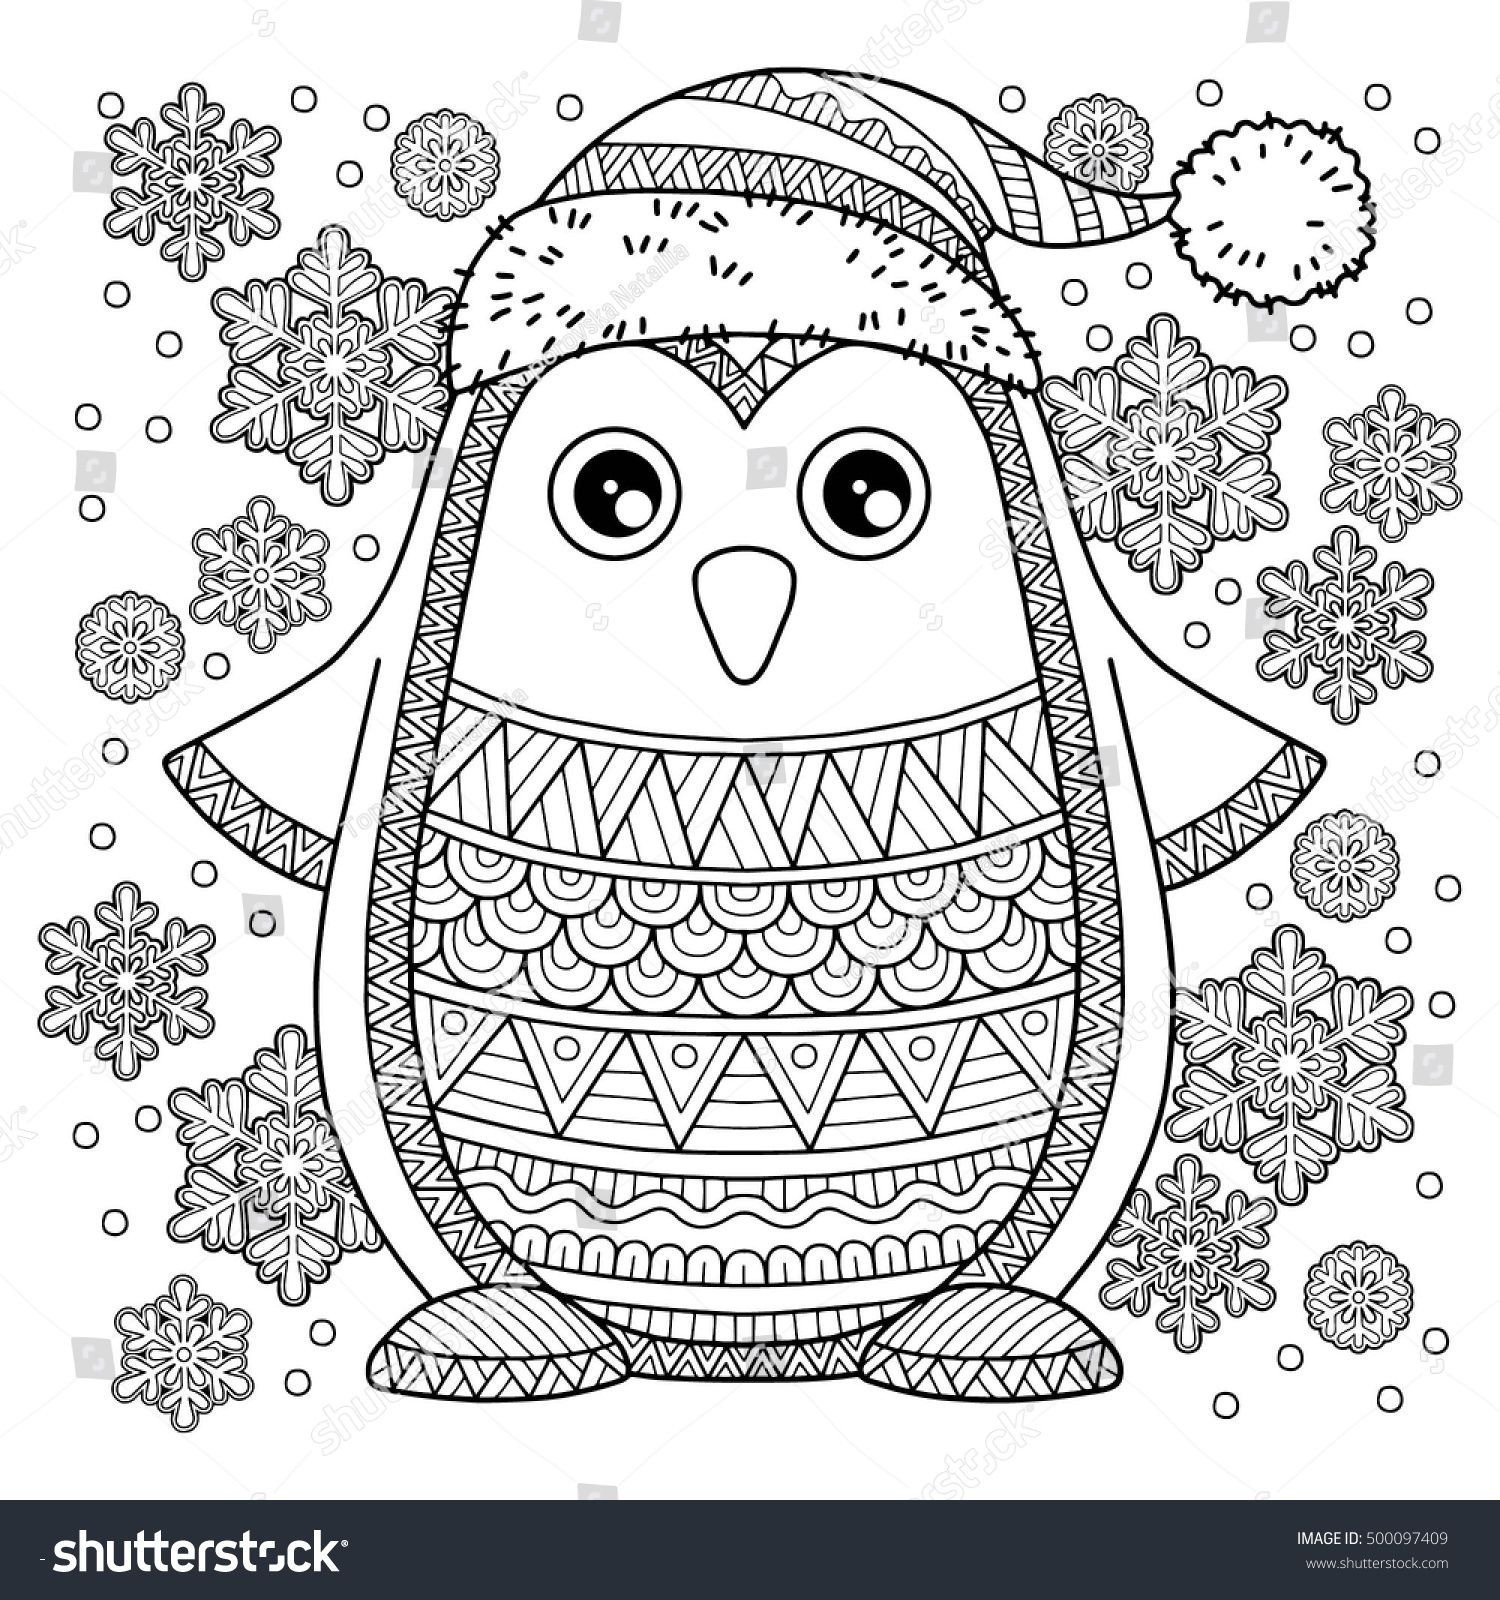 Penguin Coloring Page Club Penguin Coloring Pages Of Penguins To Print Epic Penguin